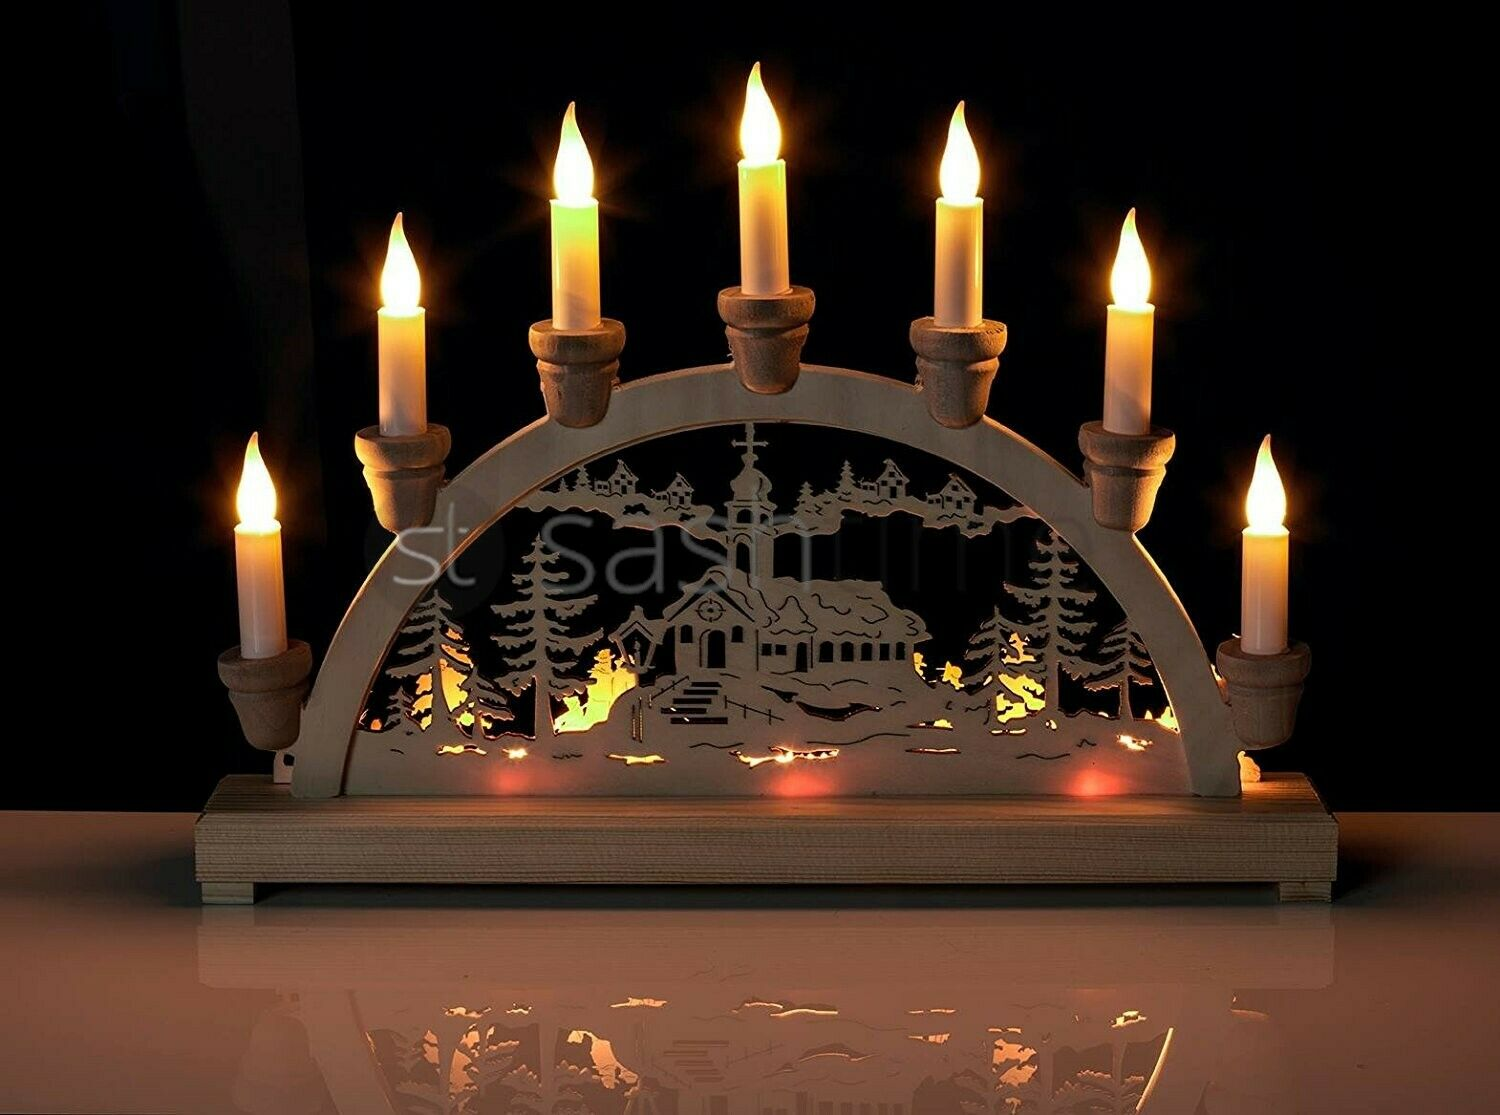 Christmas 10 led wooden candle bridge light window for Christmas window decorations clearance